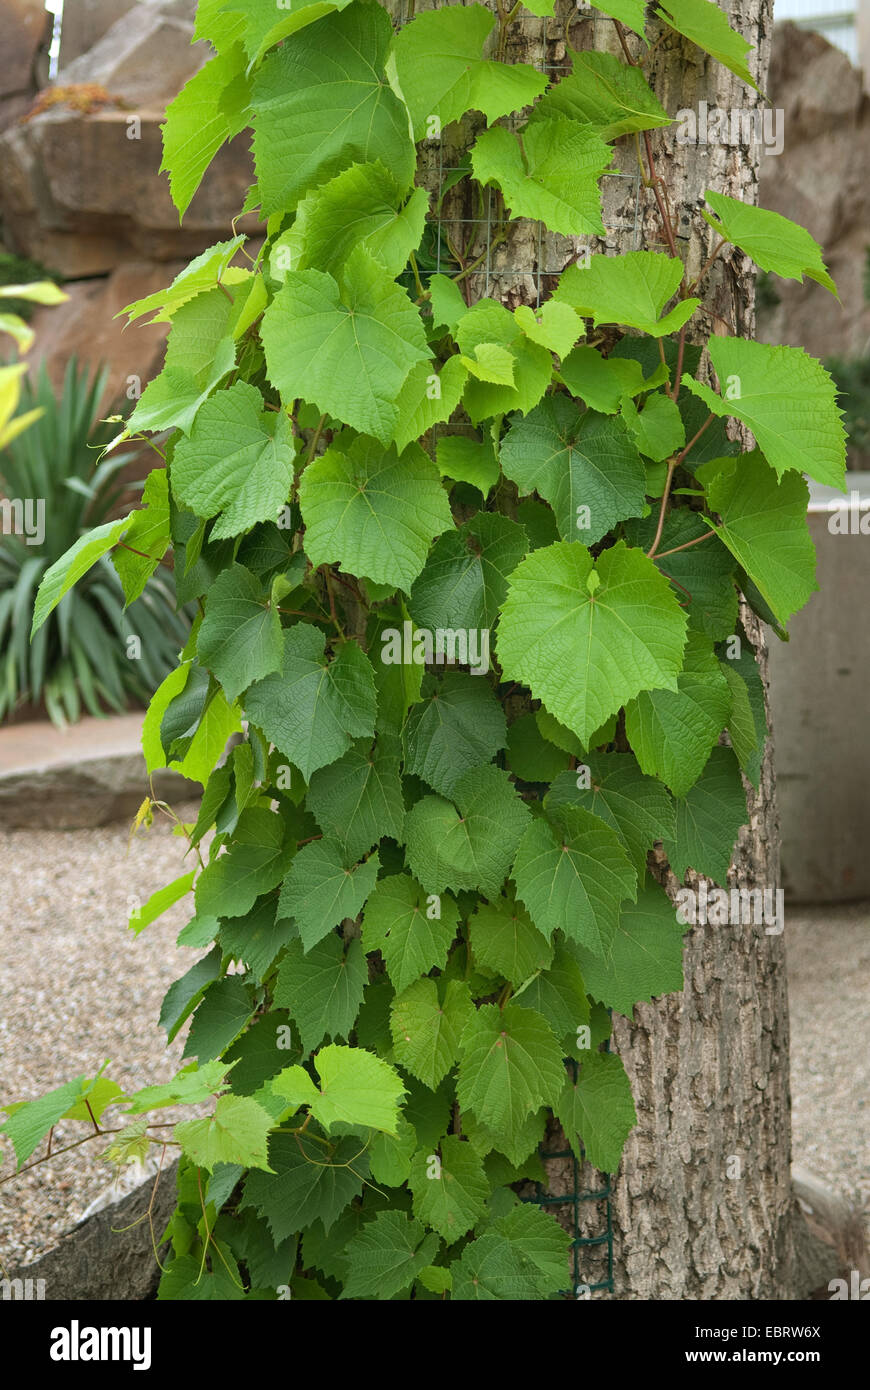 Amur grape (Vitis amurensis), at a tree trunk - Stock Image